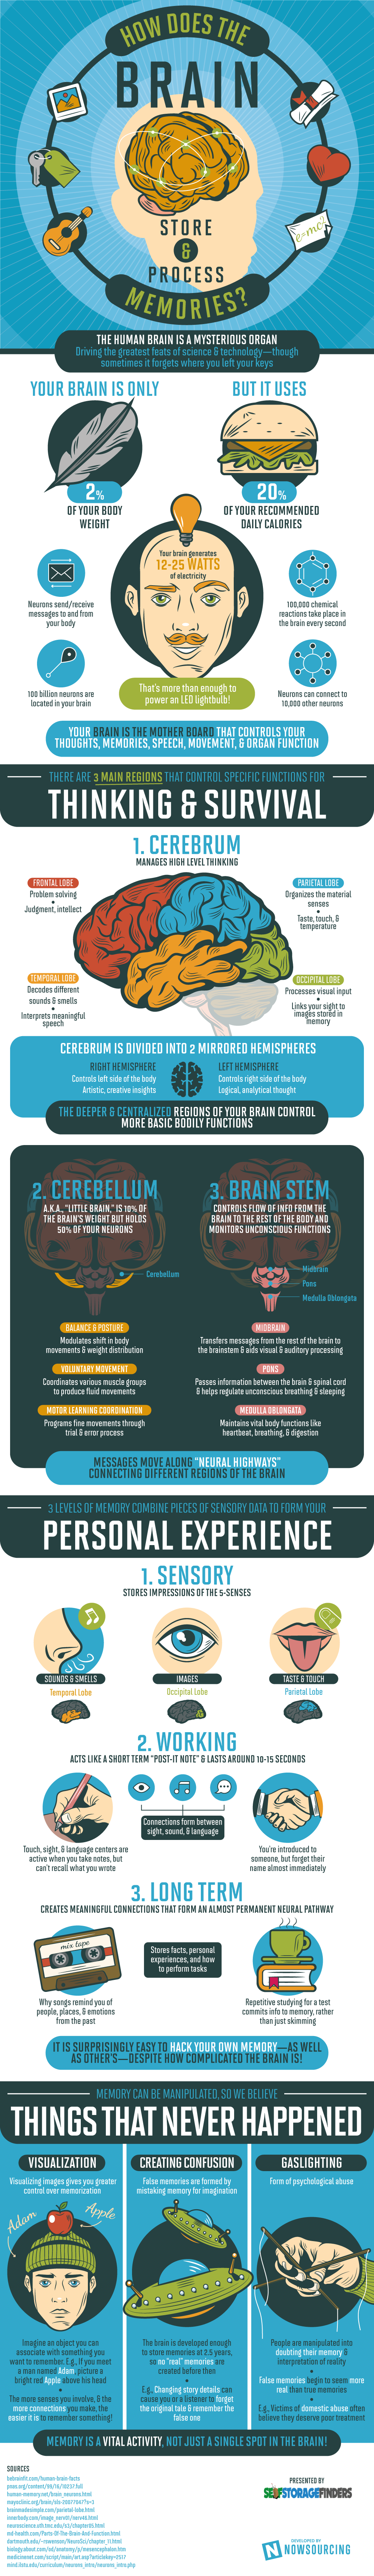 How Your Brain Stores and Processes Memories - #infographic